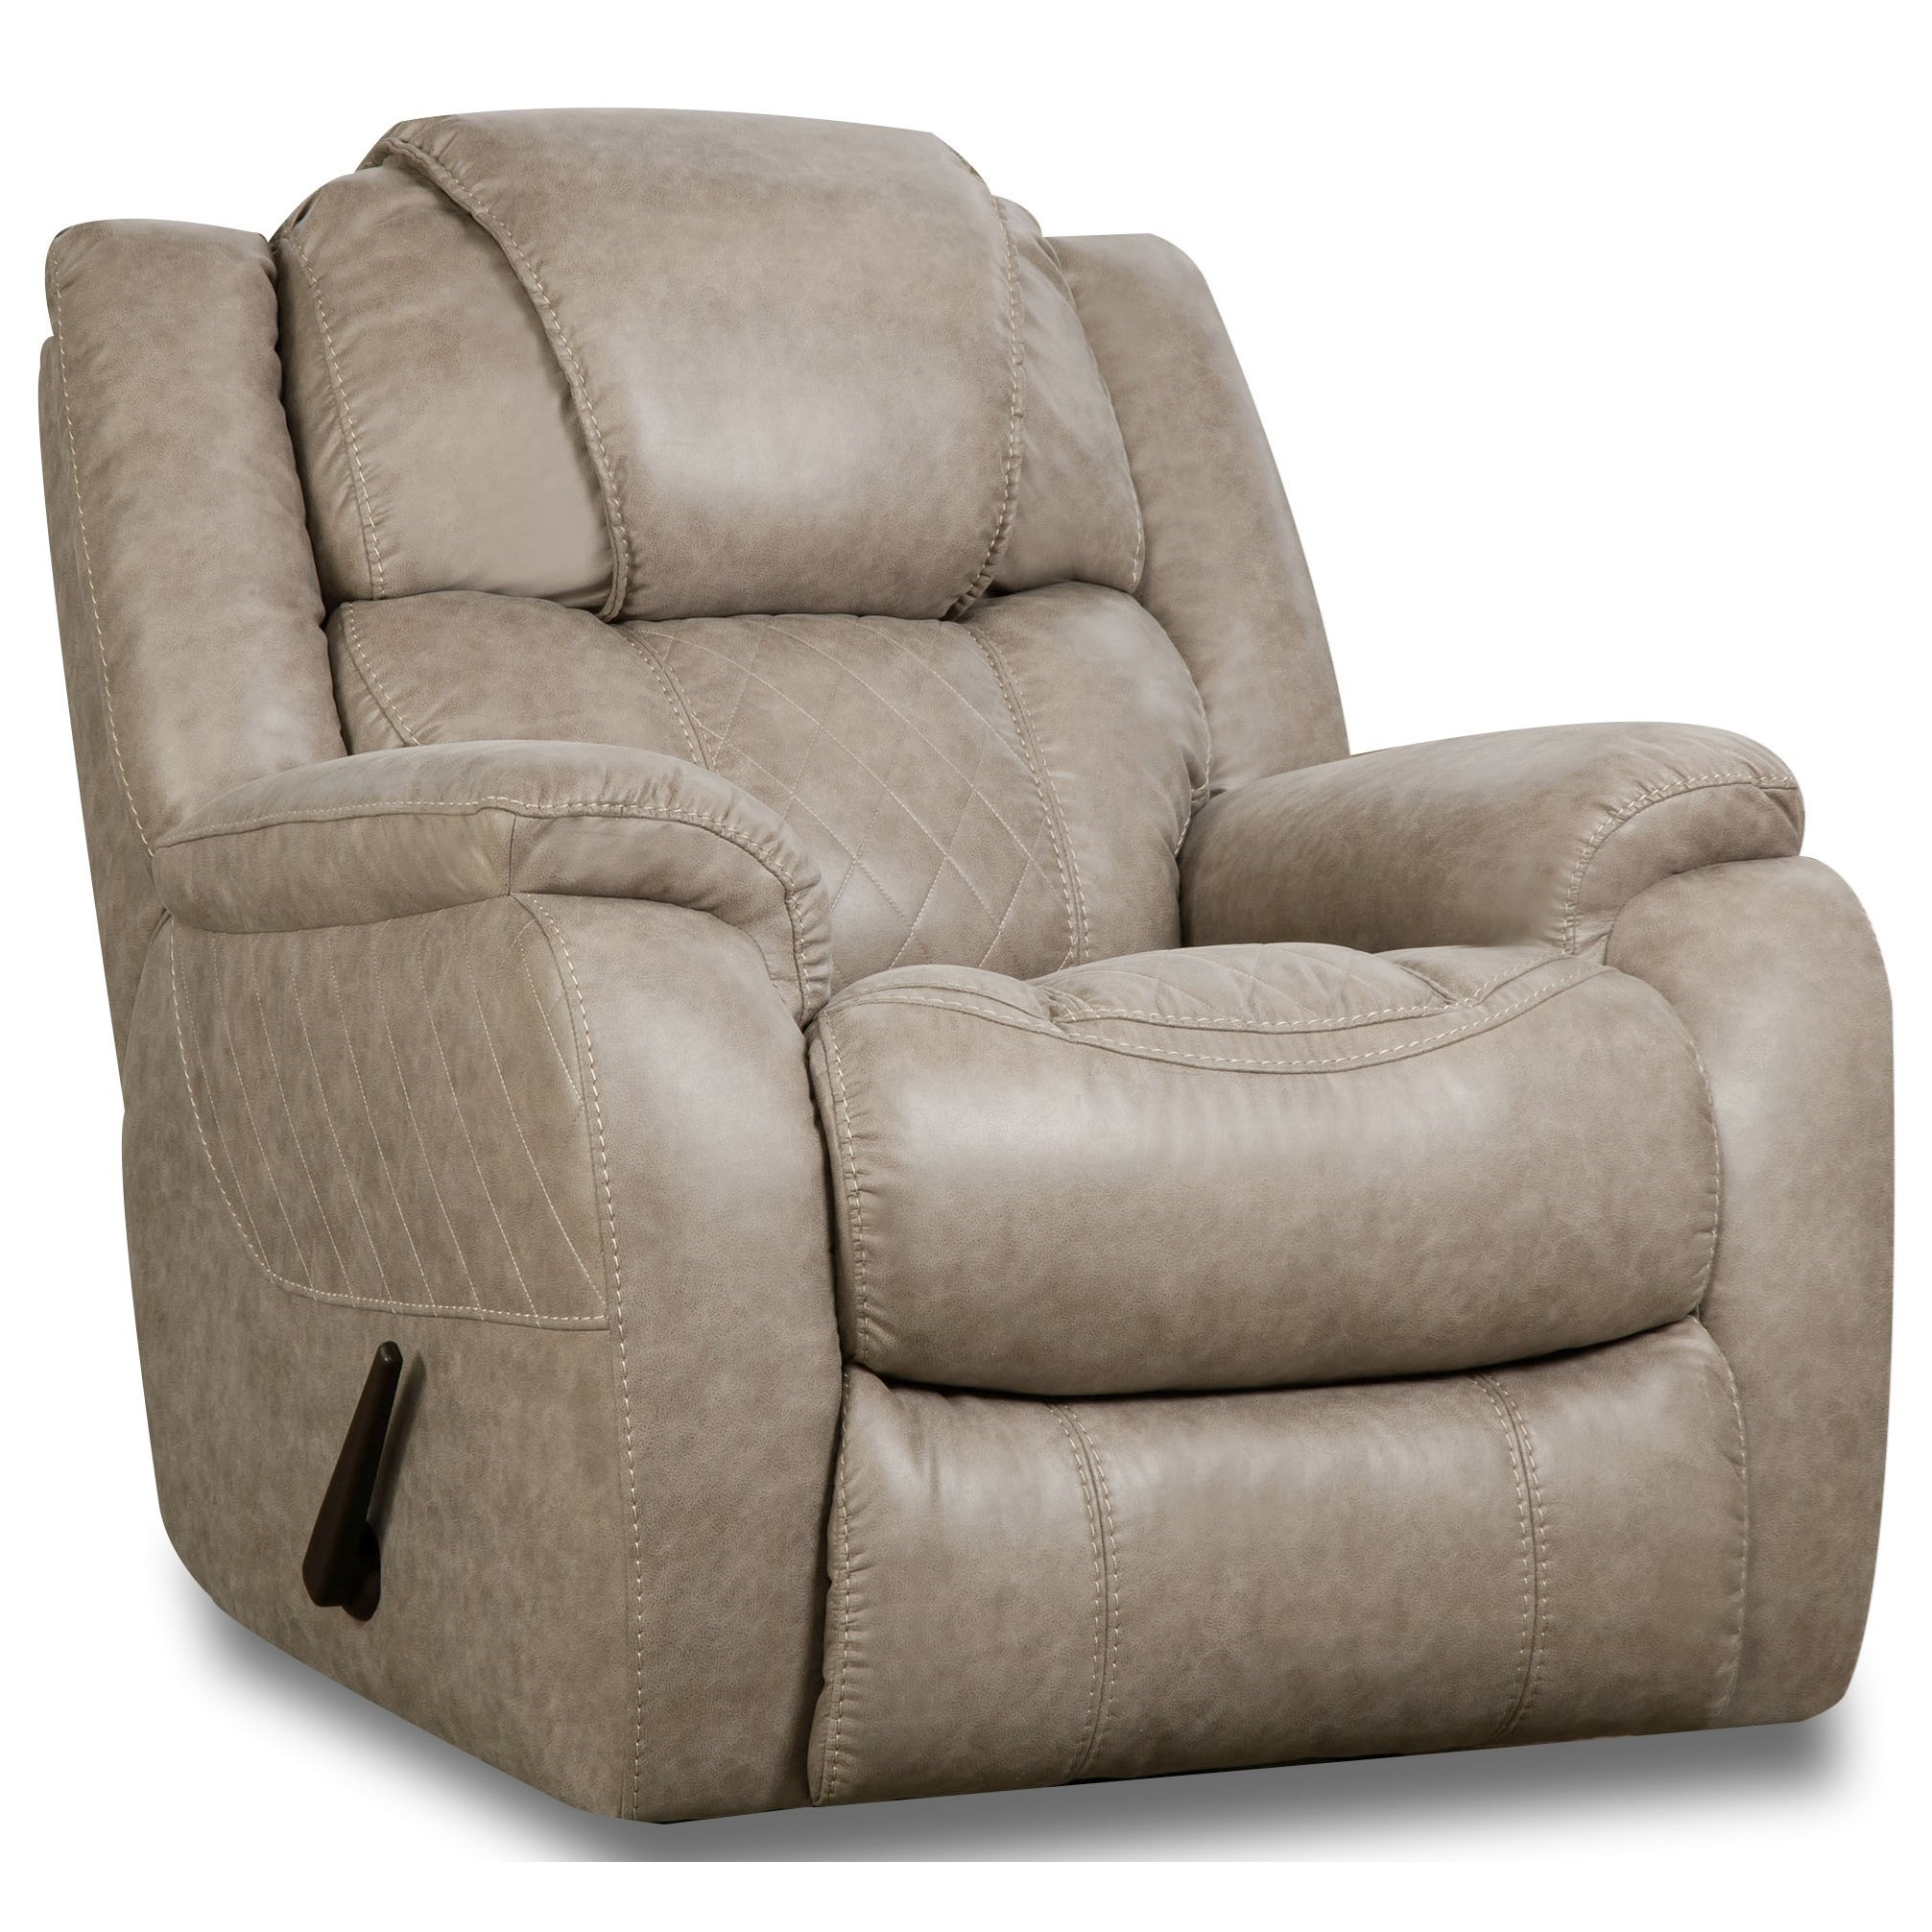 182 Rocker Recliner at Prime Brothers Furniture